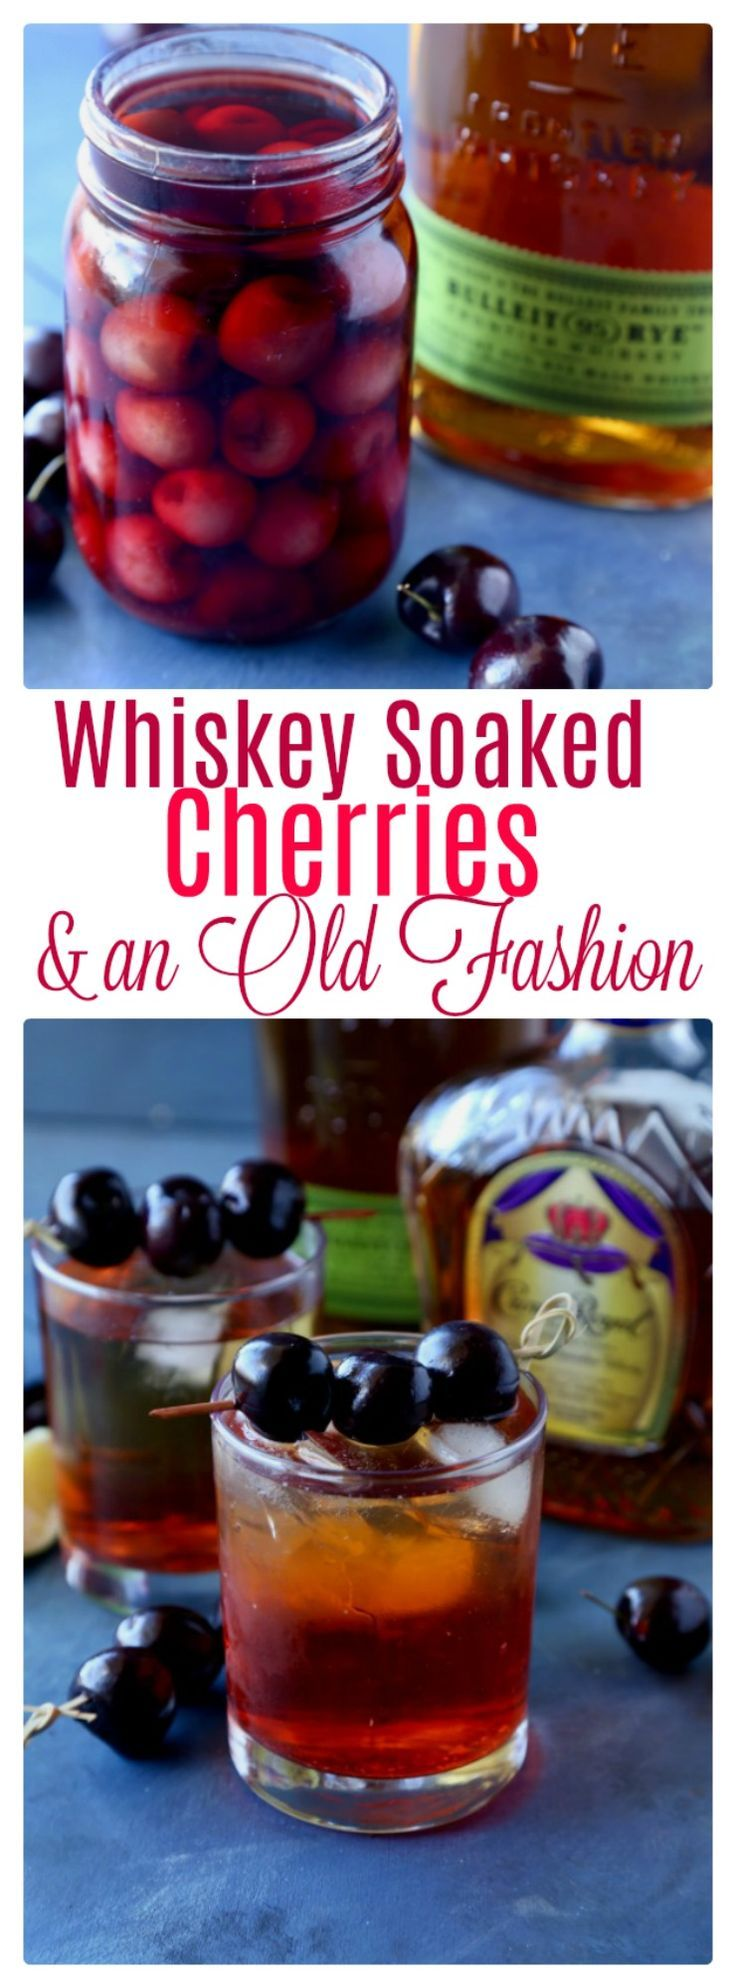 Whiskey Soaked Cherries |   Perfect in cocktails, over ice cream, or just to eat as a treat! | | See this and other delicious recipes at